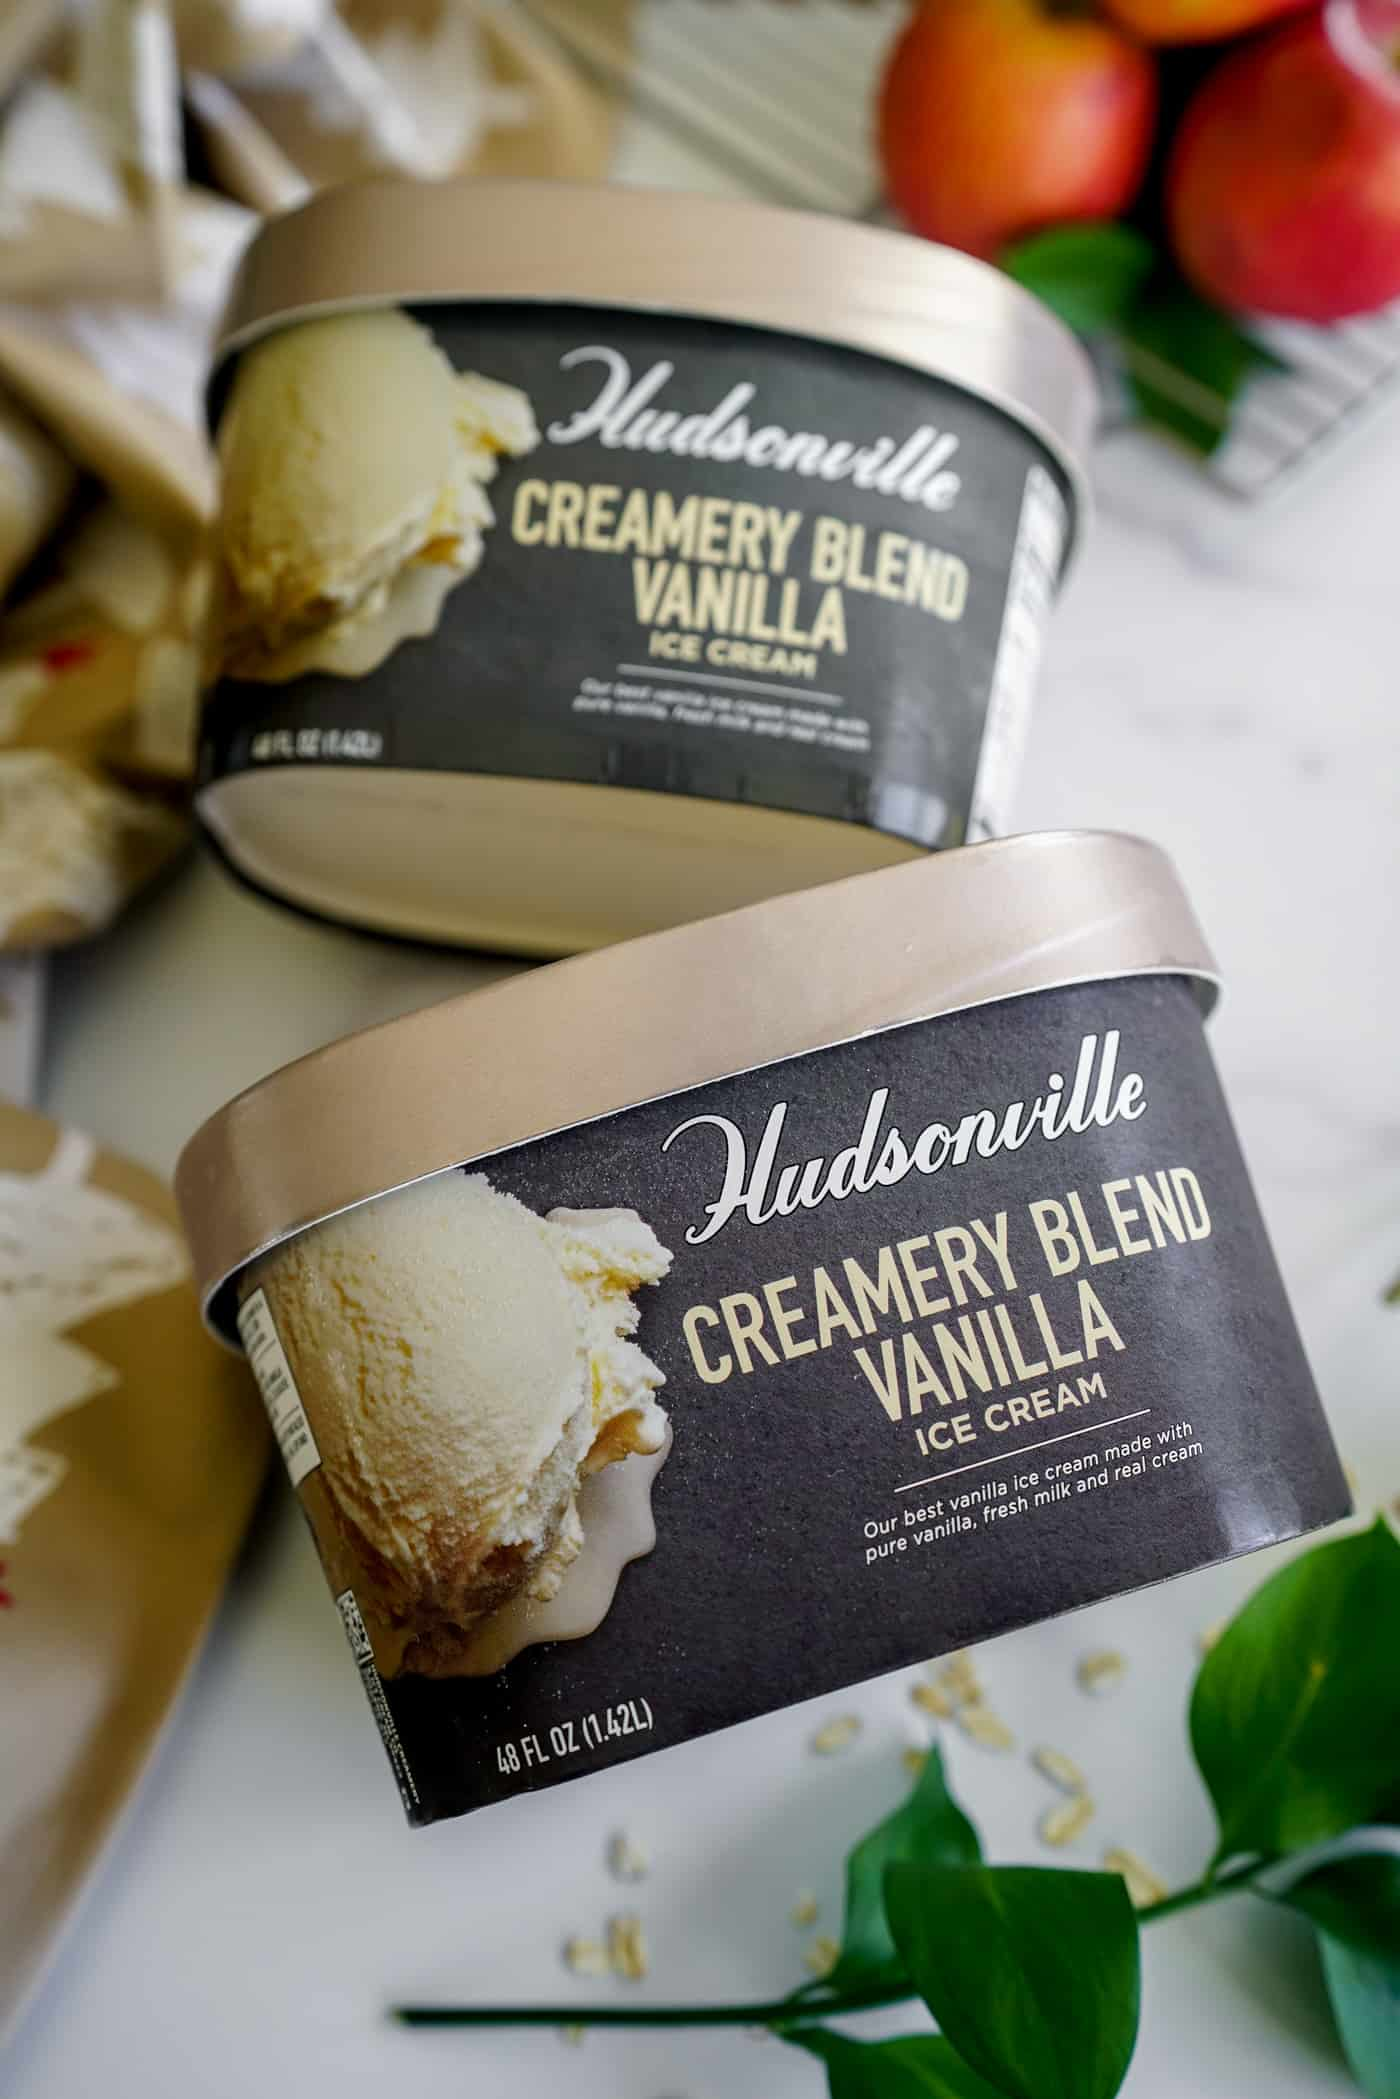 Two containers of Hudsonville Creamery Blend Vanilla Ice Cream